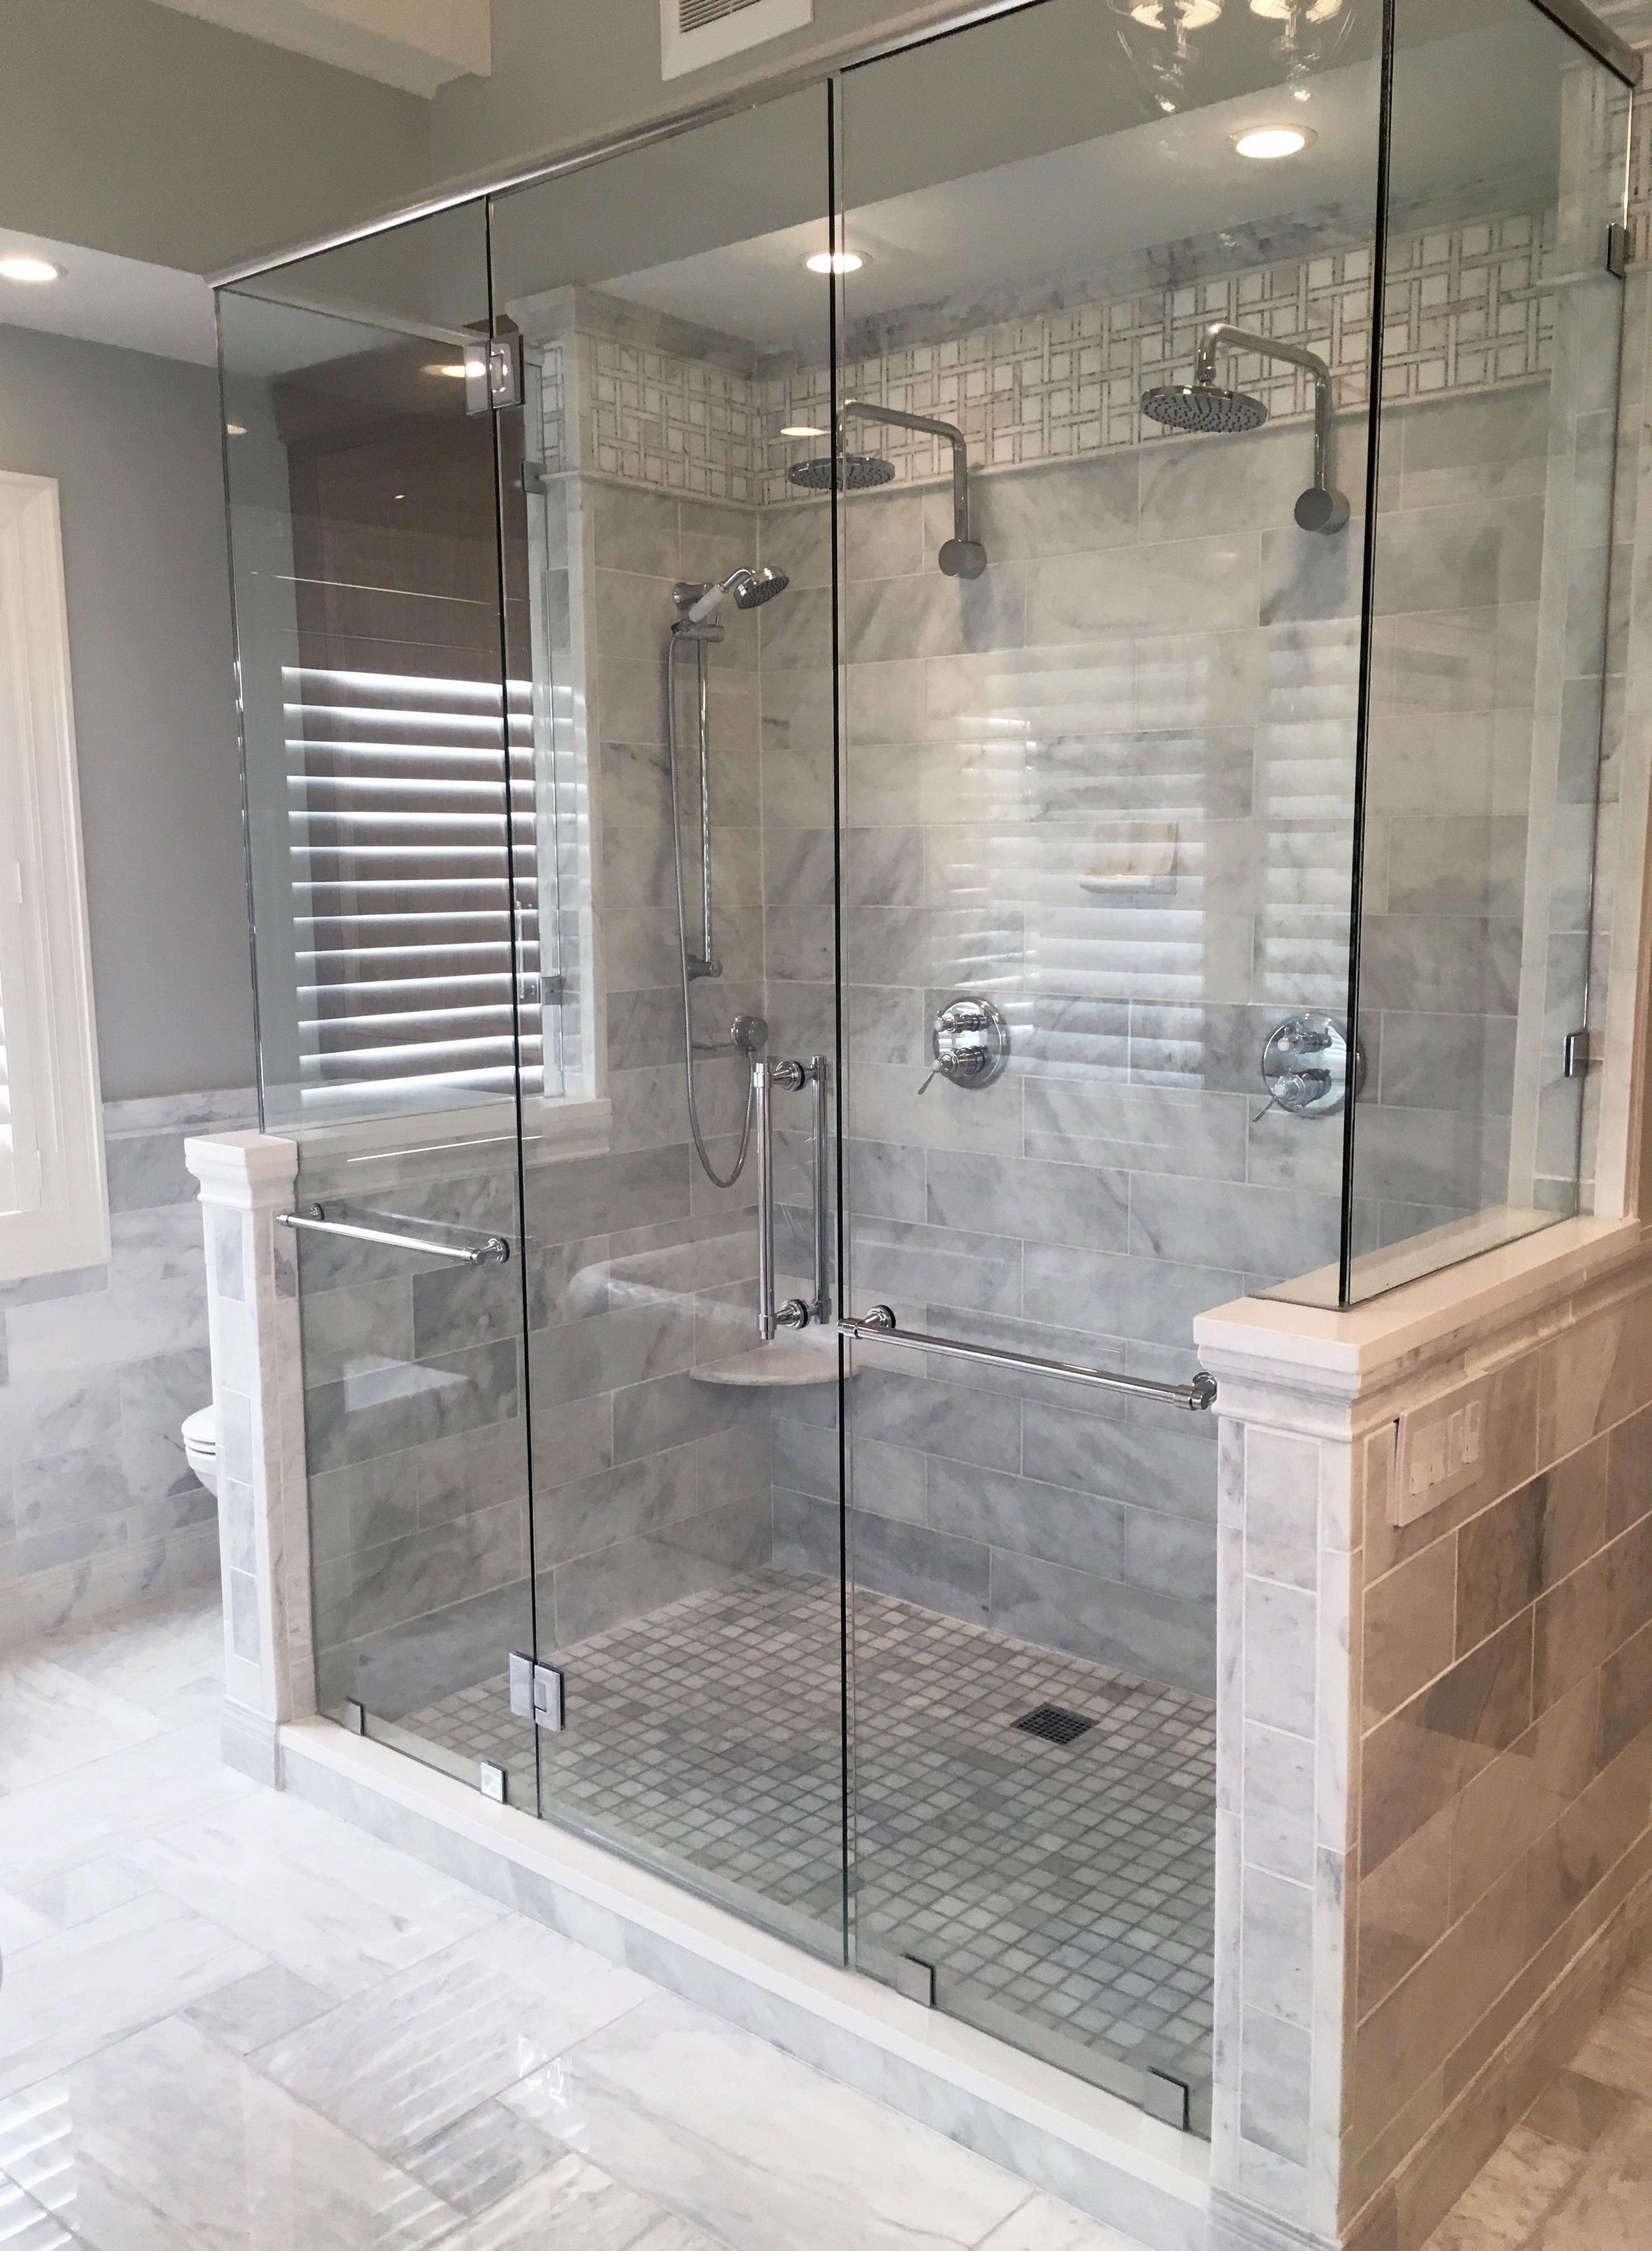 32 Simply Double Shower Head Master Baths Master Bath Shower Bathrooms Remodel Bathroom Remodel Master